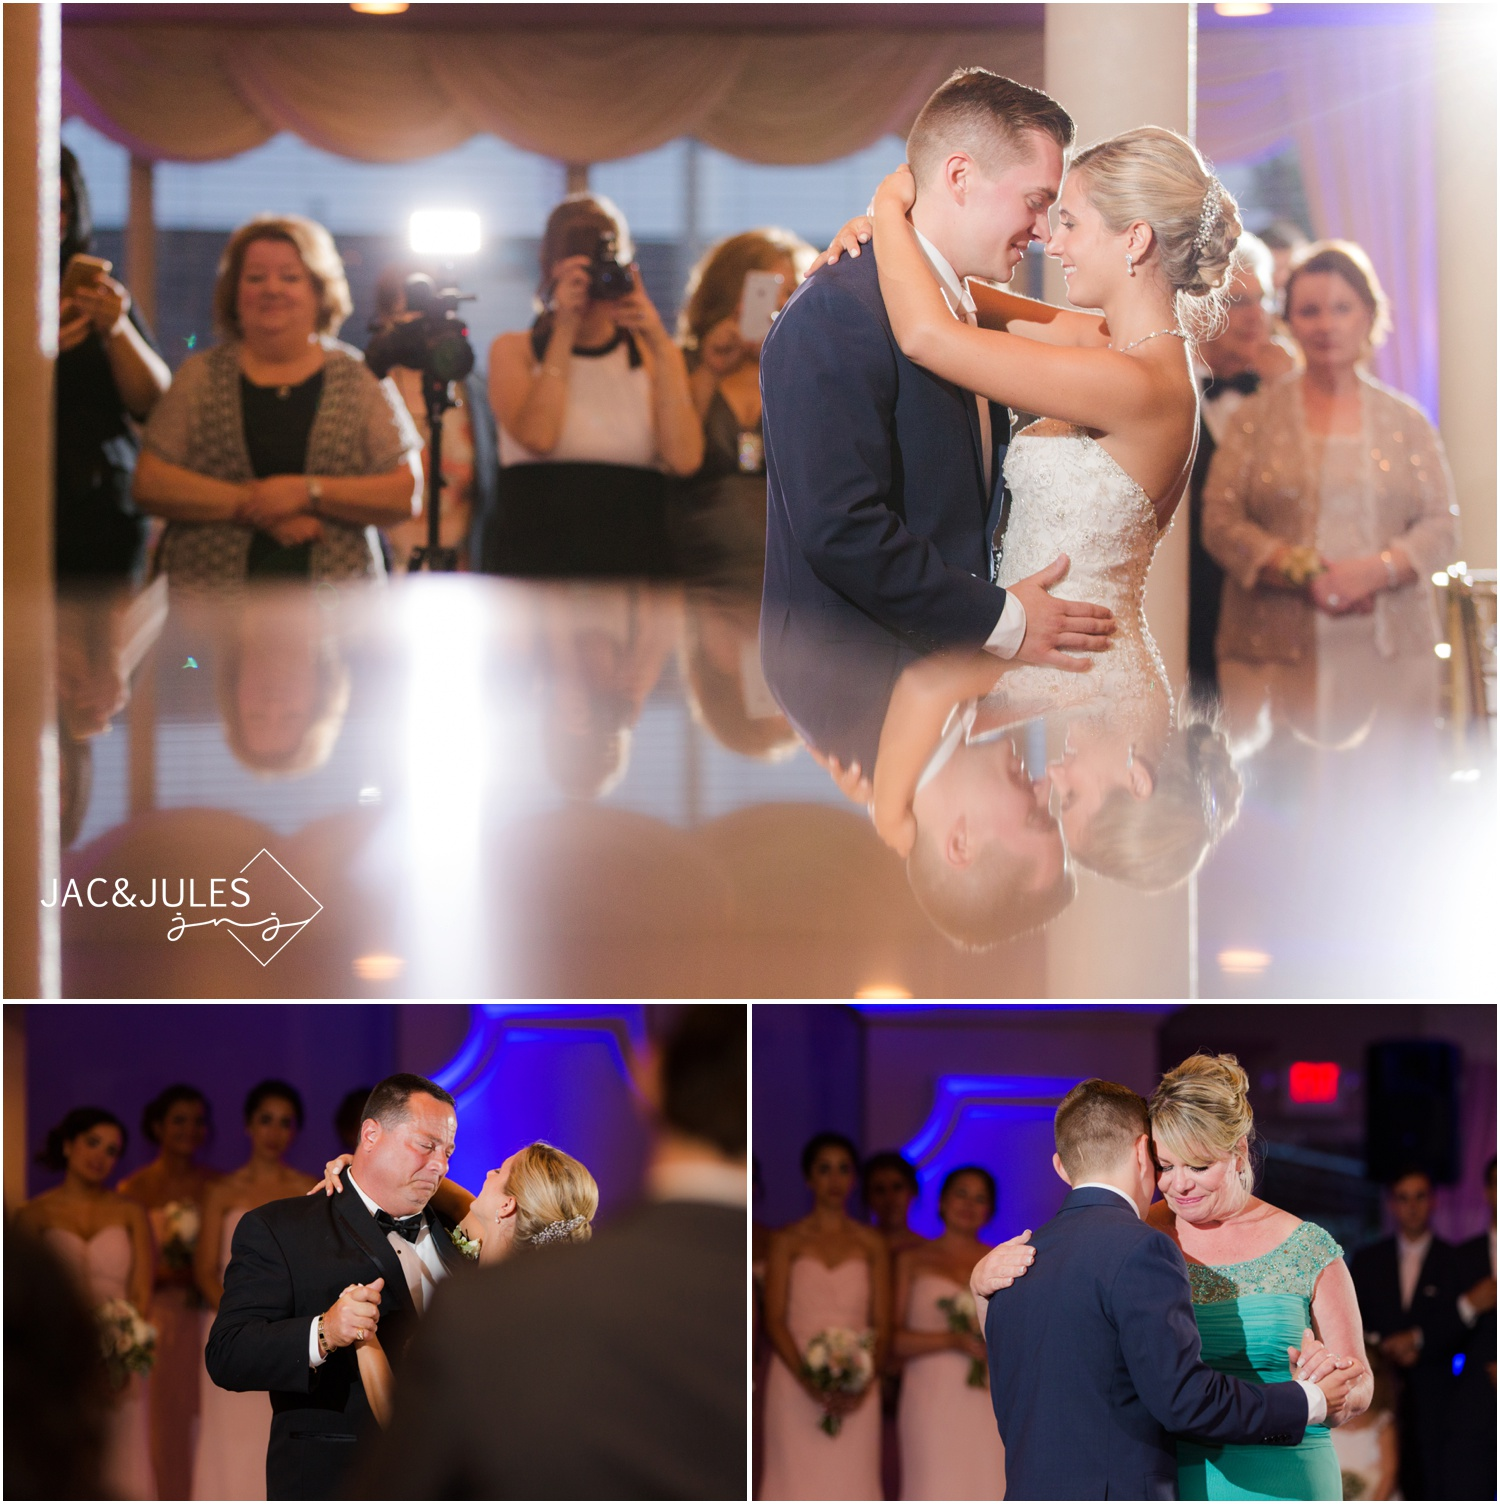 Bride and Groom first dance with pretty purple uplighting by SCE Event Group at The Stateroom in LBI, NJ